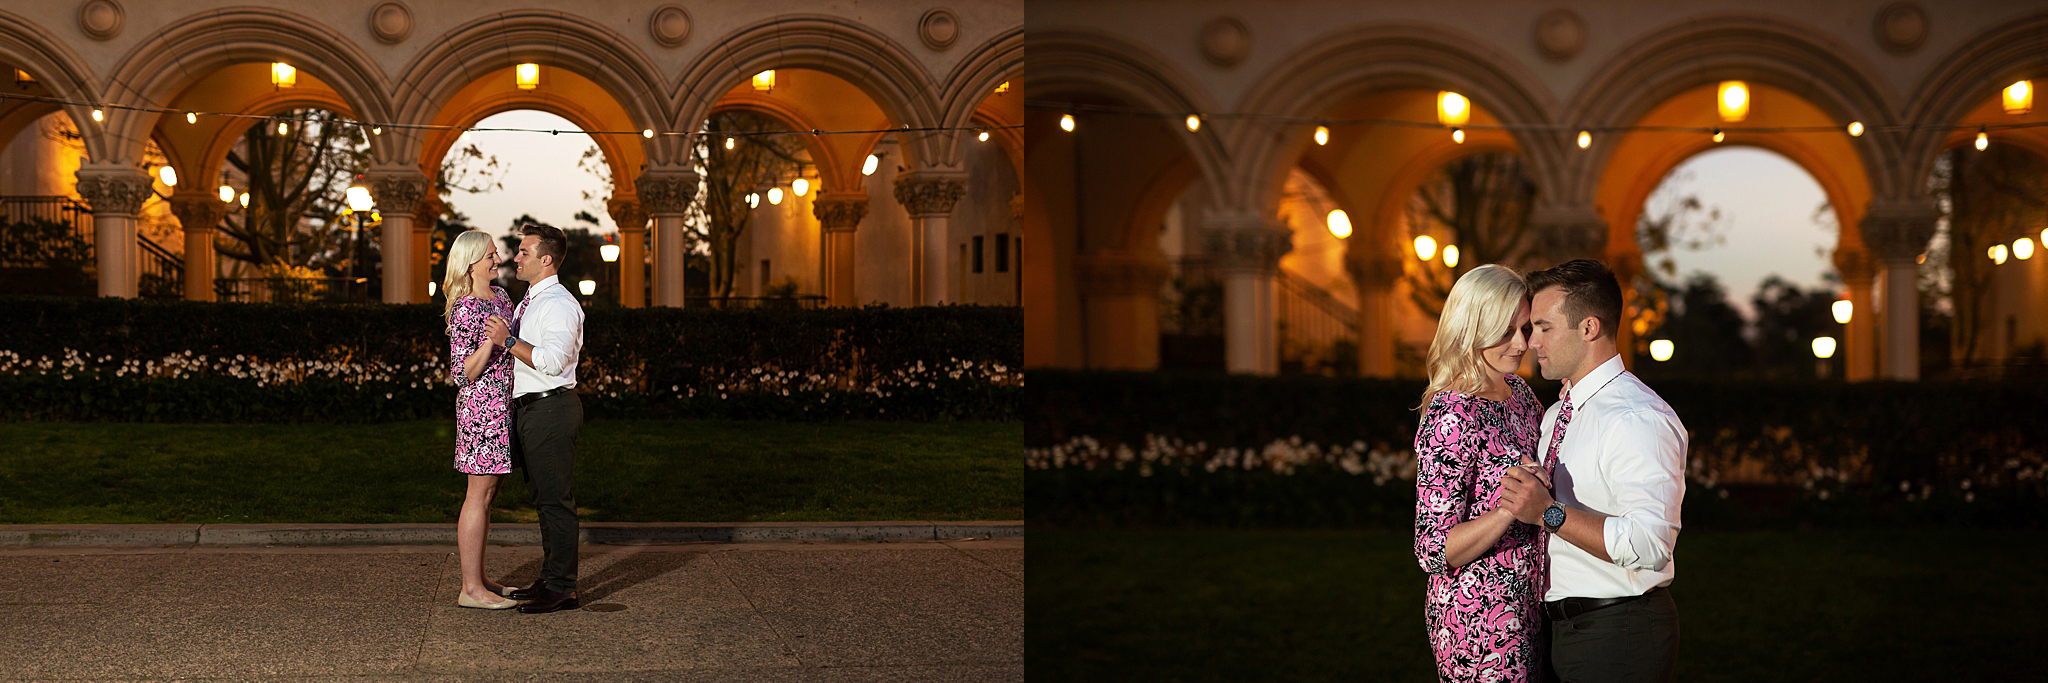 Zach and Cora share a dance as the sun goes down. Balboa Park Engagement Session, San Diego California